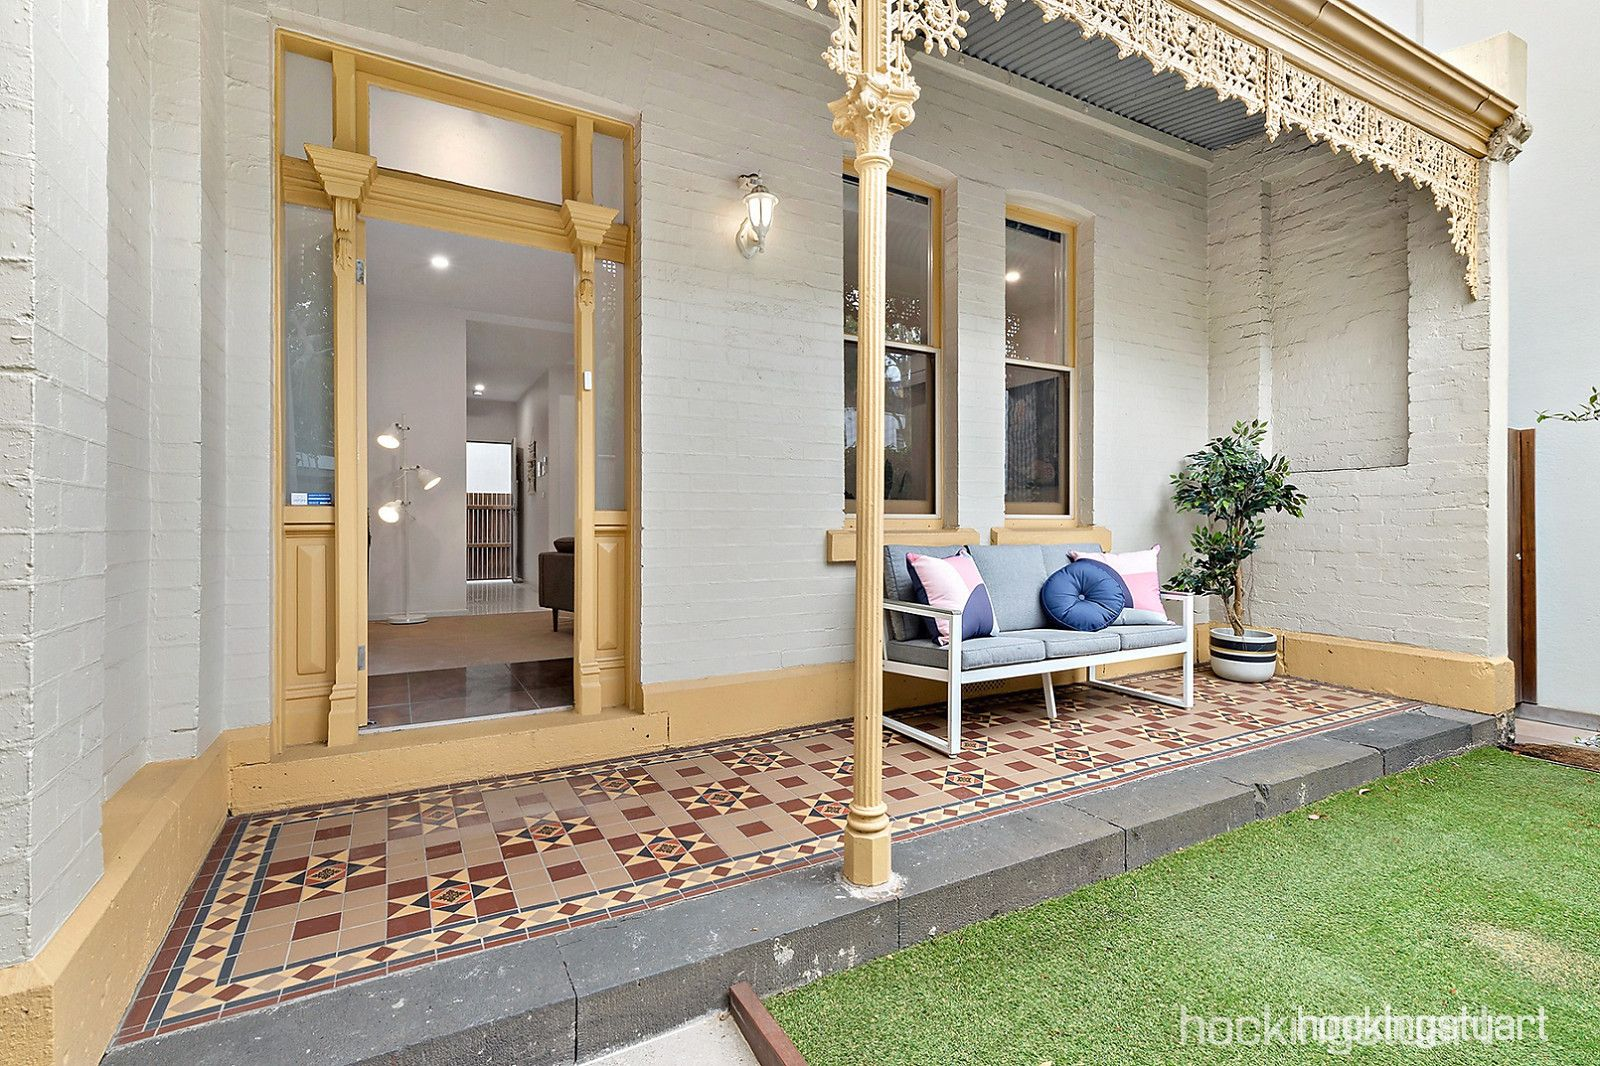 15/1 Villiers Street, North Melbourne VIC 3051, Image 0